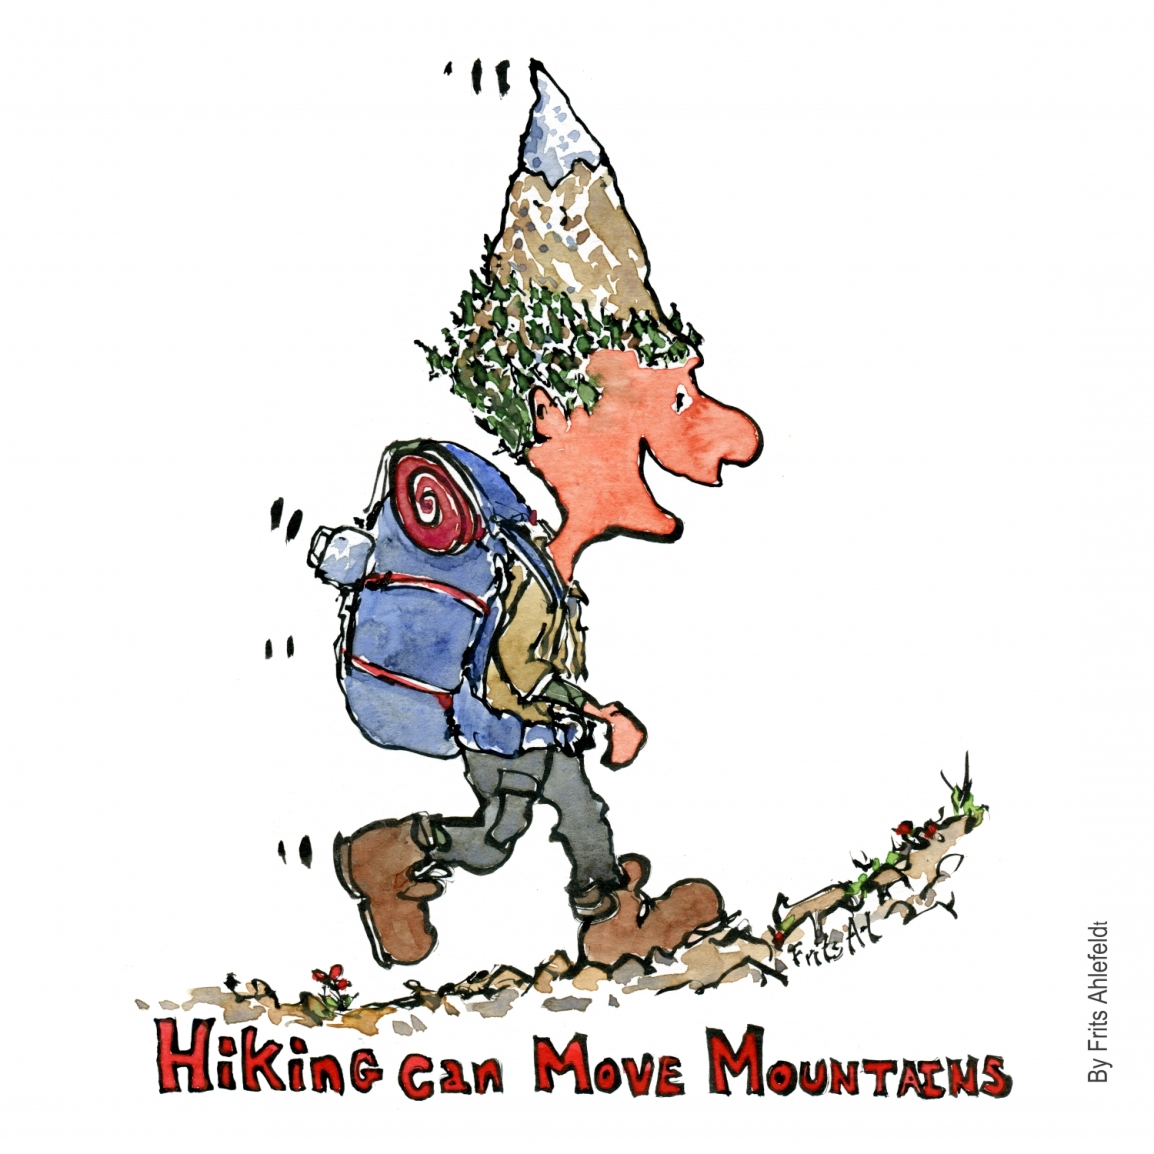 Hiking can move mountains